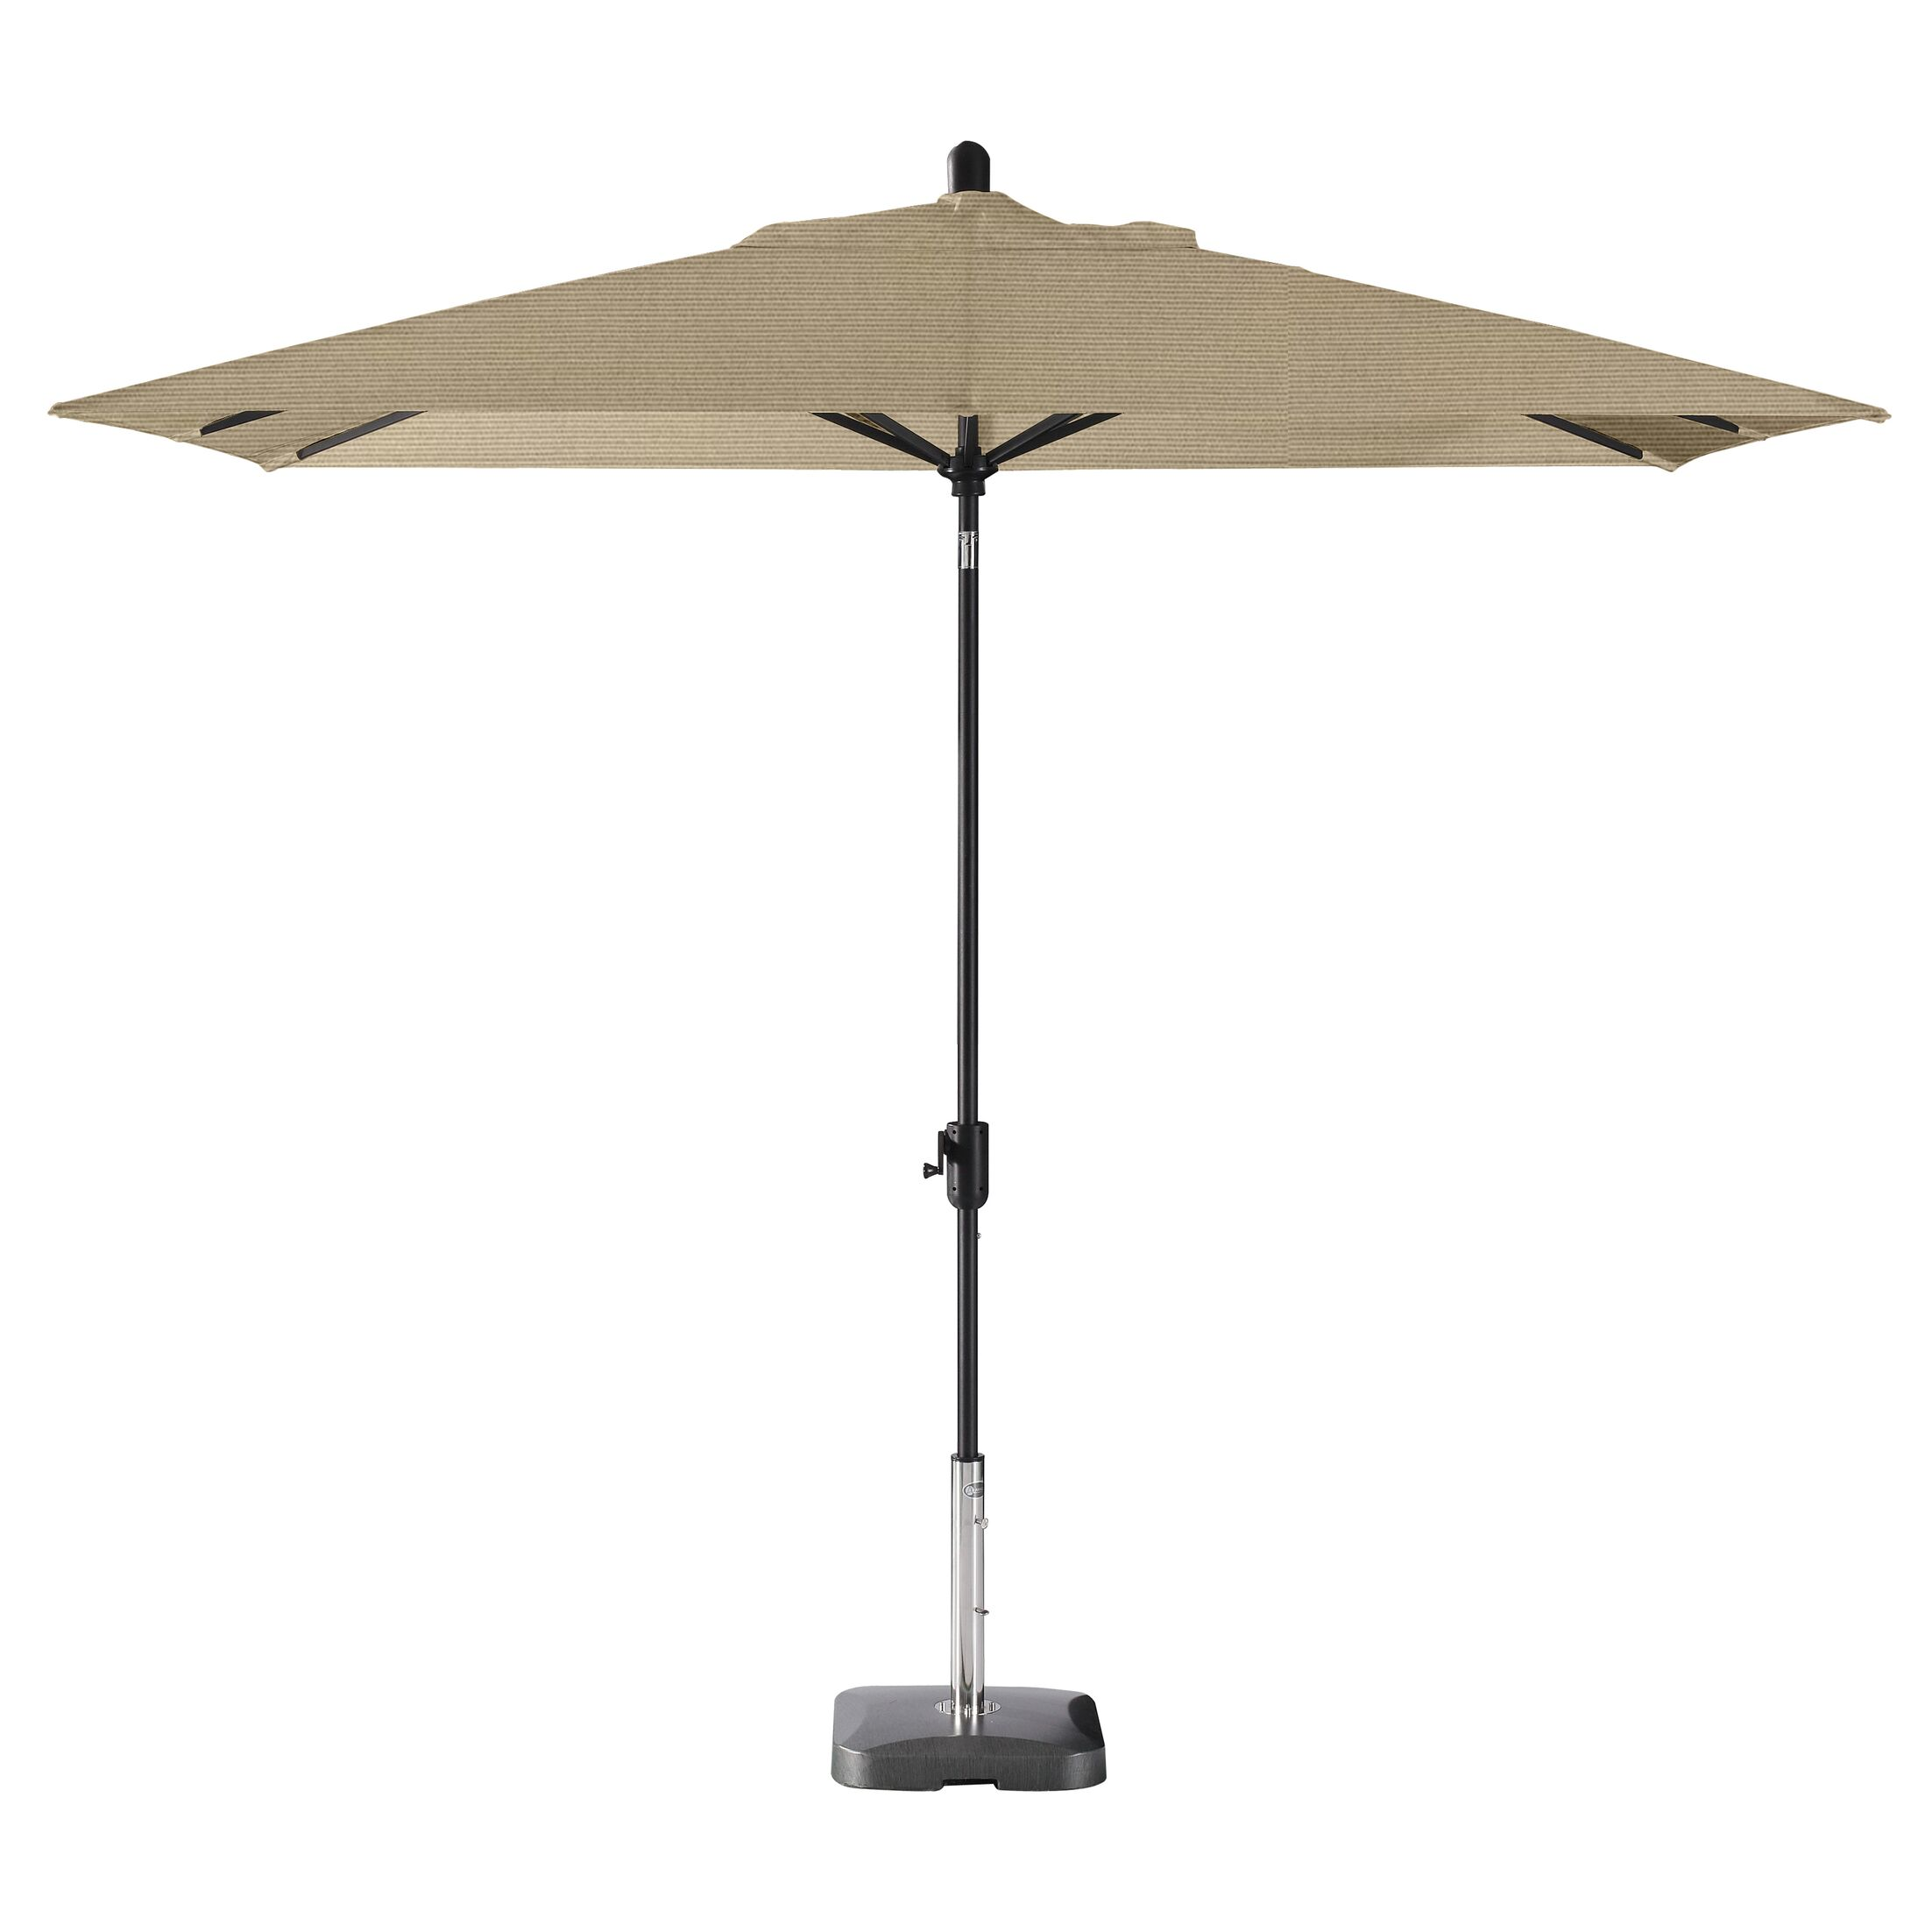 Wieczorek Auto Tilt 10' x 6.5' Rectangular Market Sunbrella Umbrella Fabric Color: Cocoa